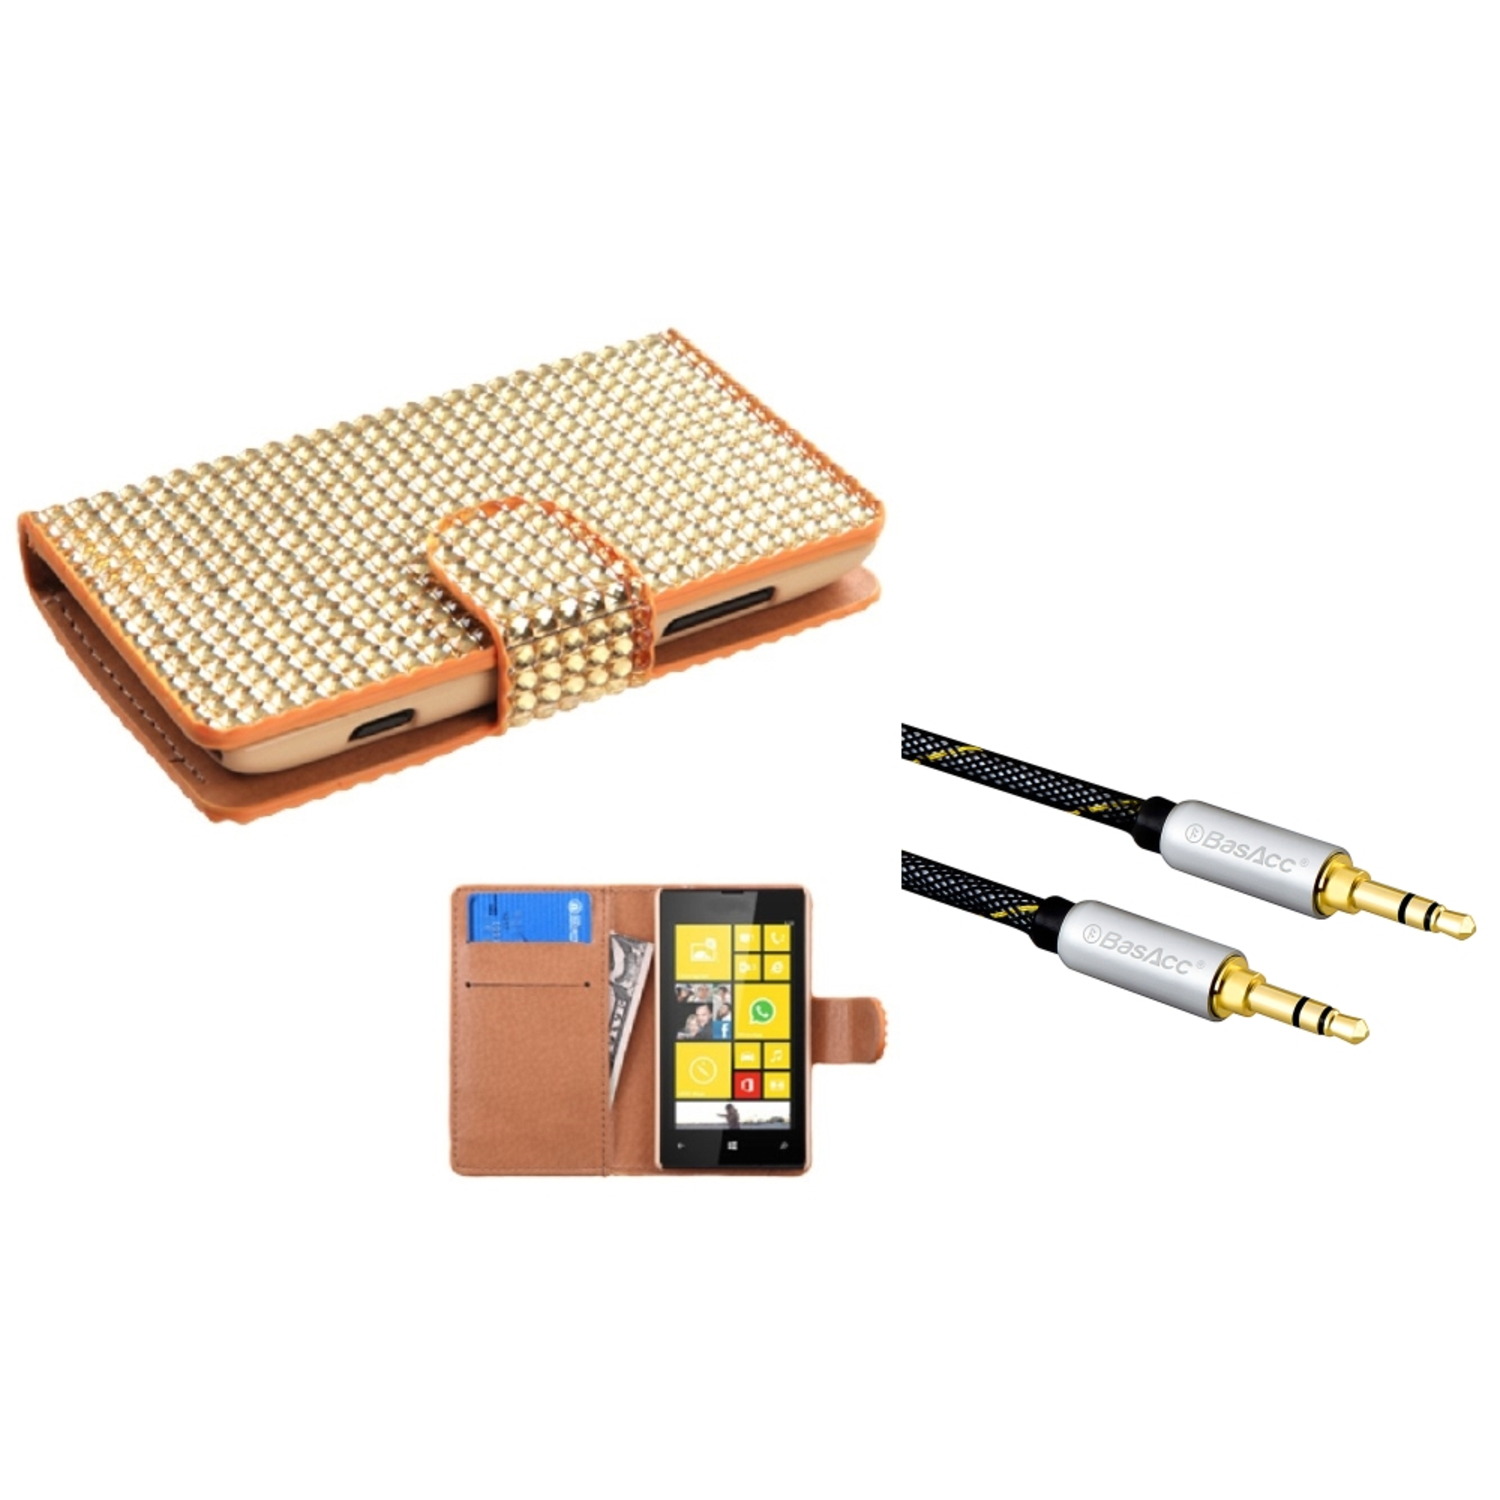 Insten Gold Diamonds Flip Book Wallet Card Slot Case Cover For Nokia Lumia 520 (with 3.5mm Universal Audio Cable M/M)